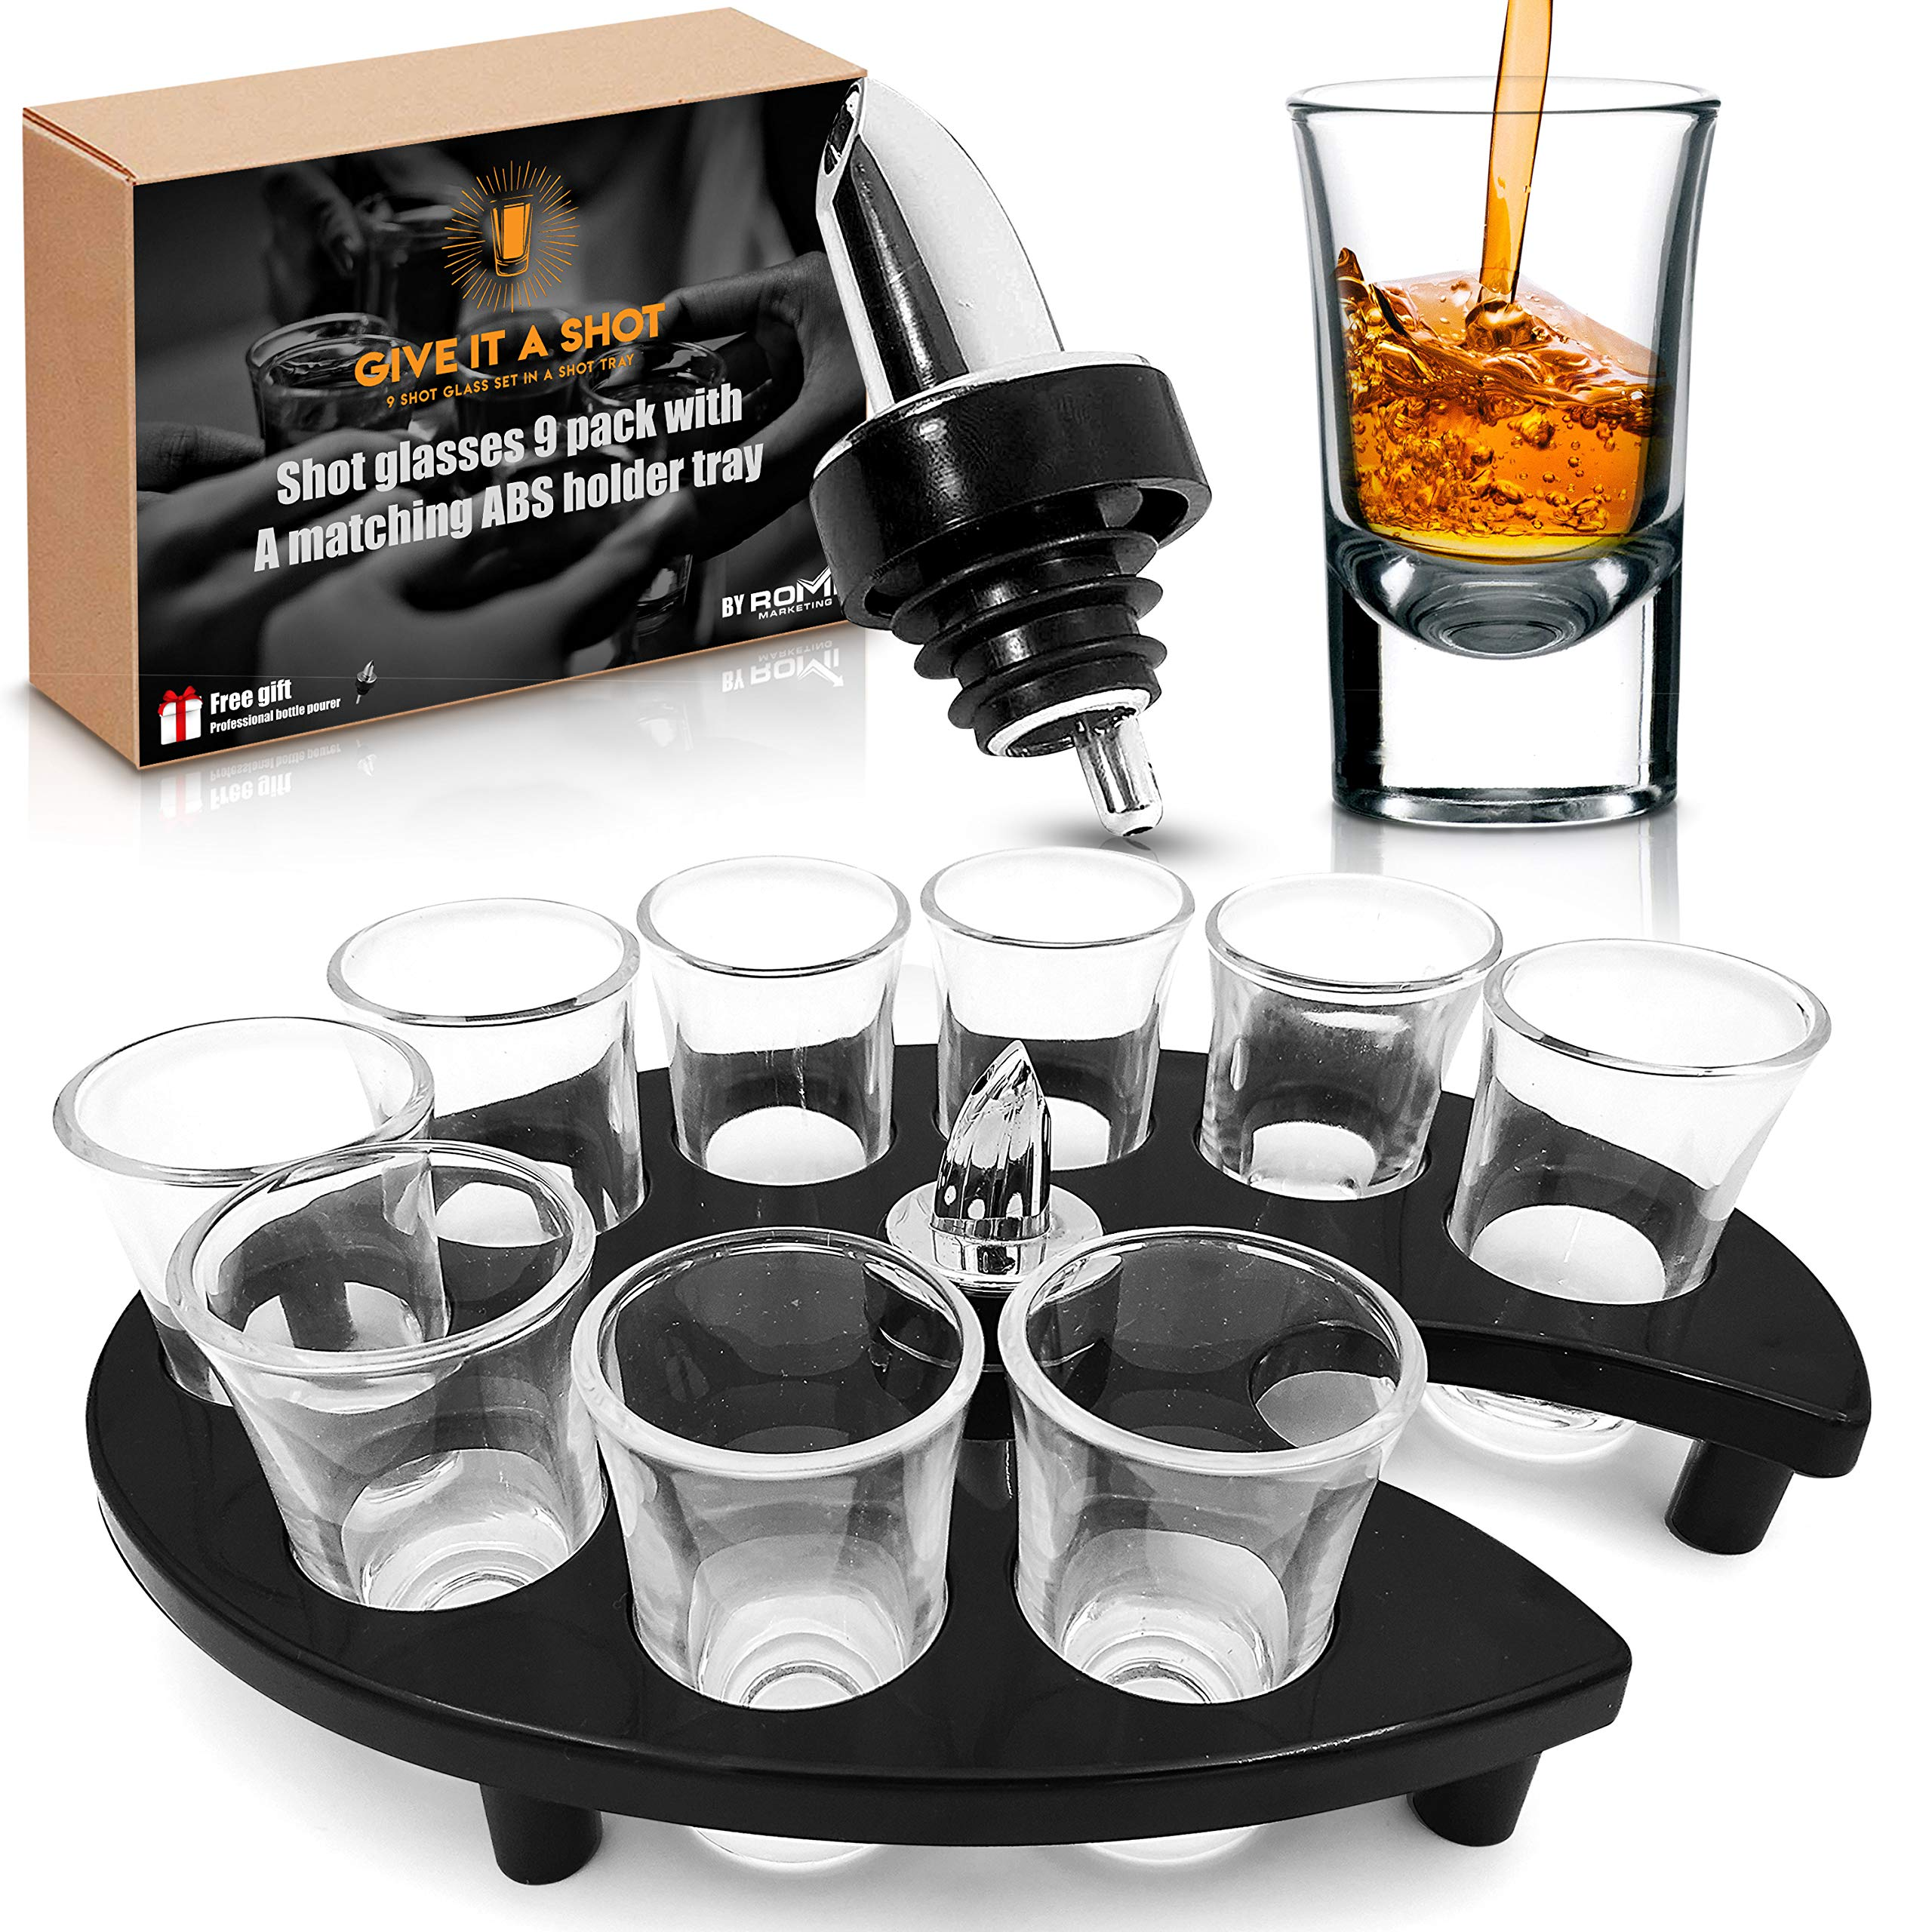 ''Give it a shot'' - Stylish shot glass set in a Shot tray - Durable, thick based shot glasses! Shot glasses 9 pack, perfect for parties and events! + Free Gift, Professional Bottle Pourer. by Give it a shot